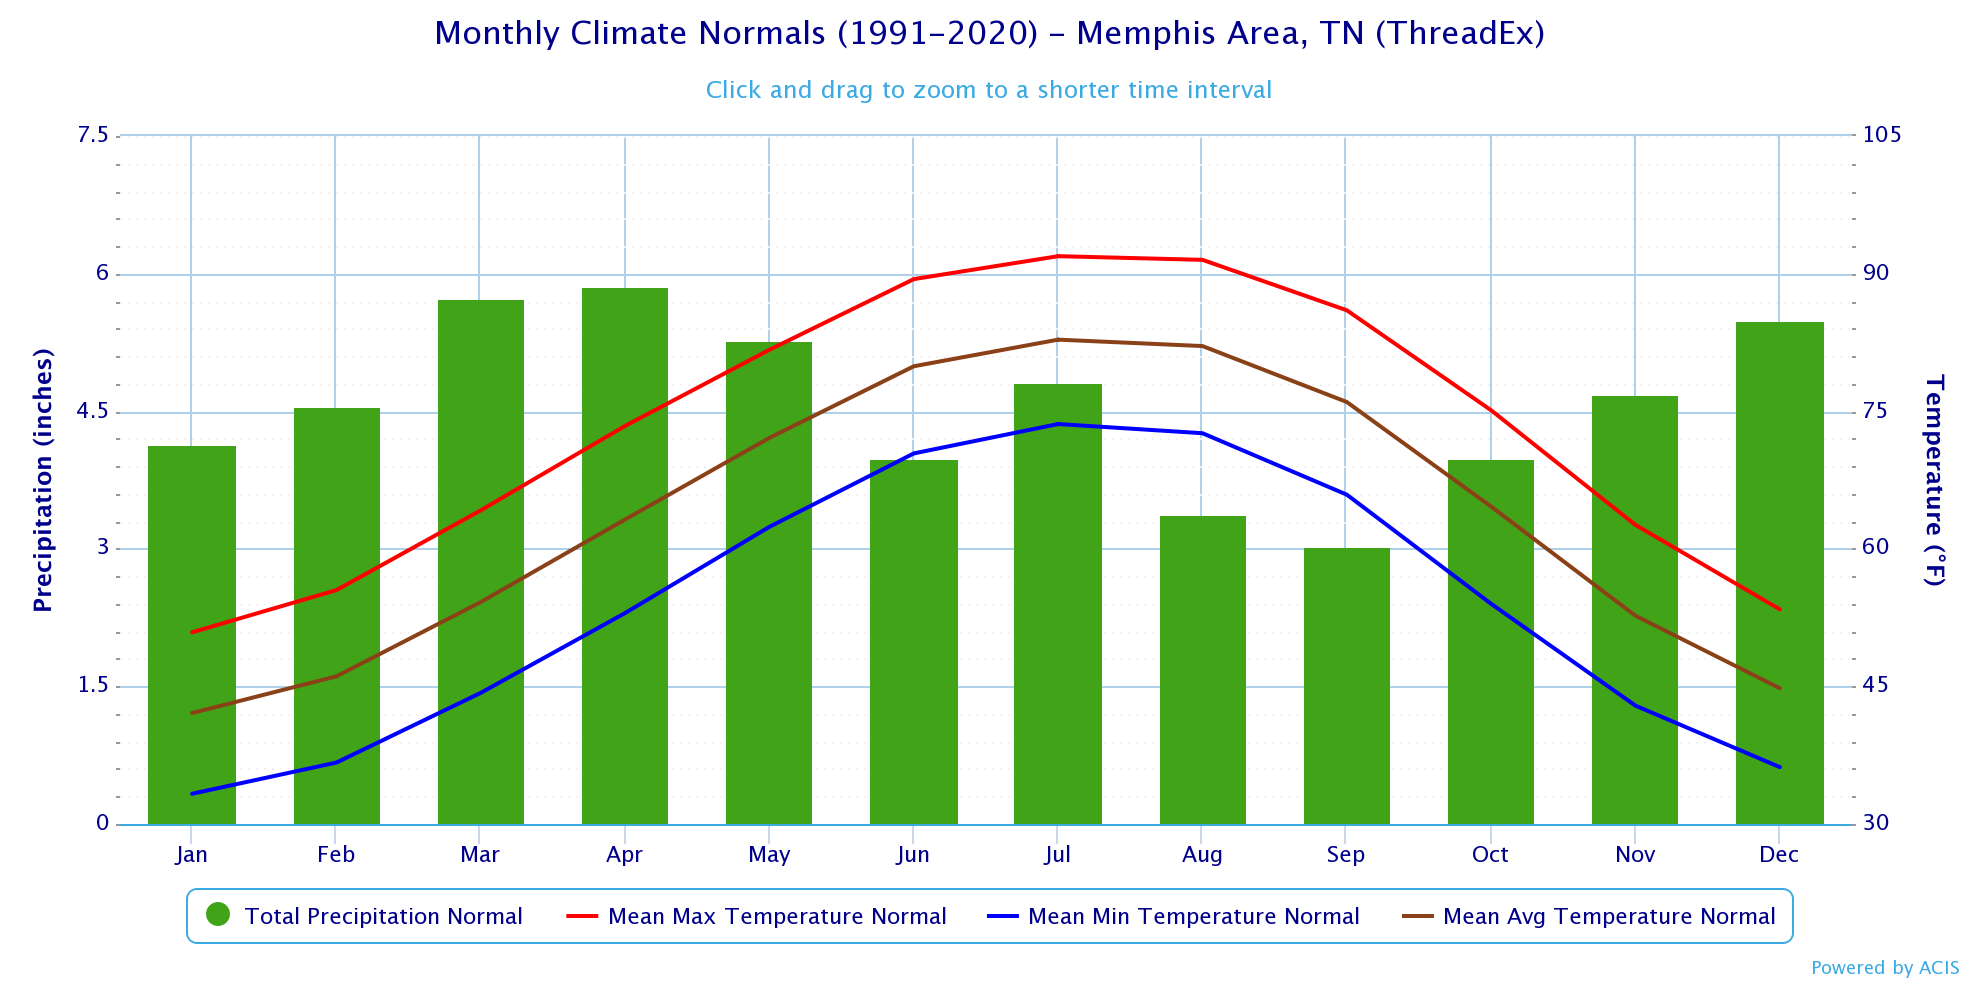 Monthly Climate Normals for Memphis